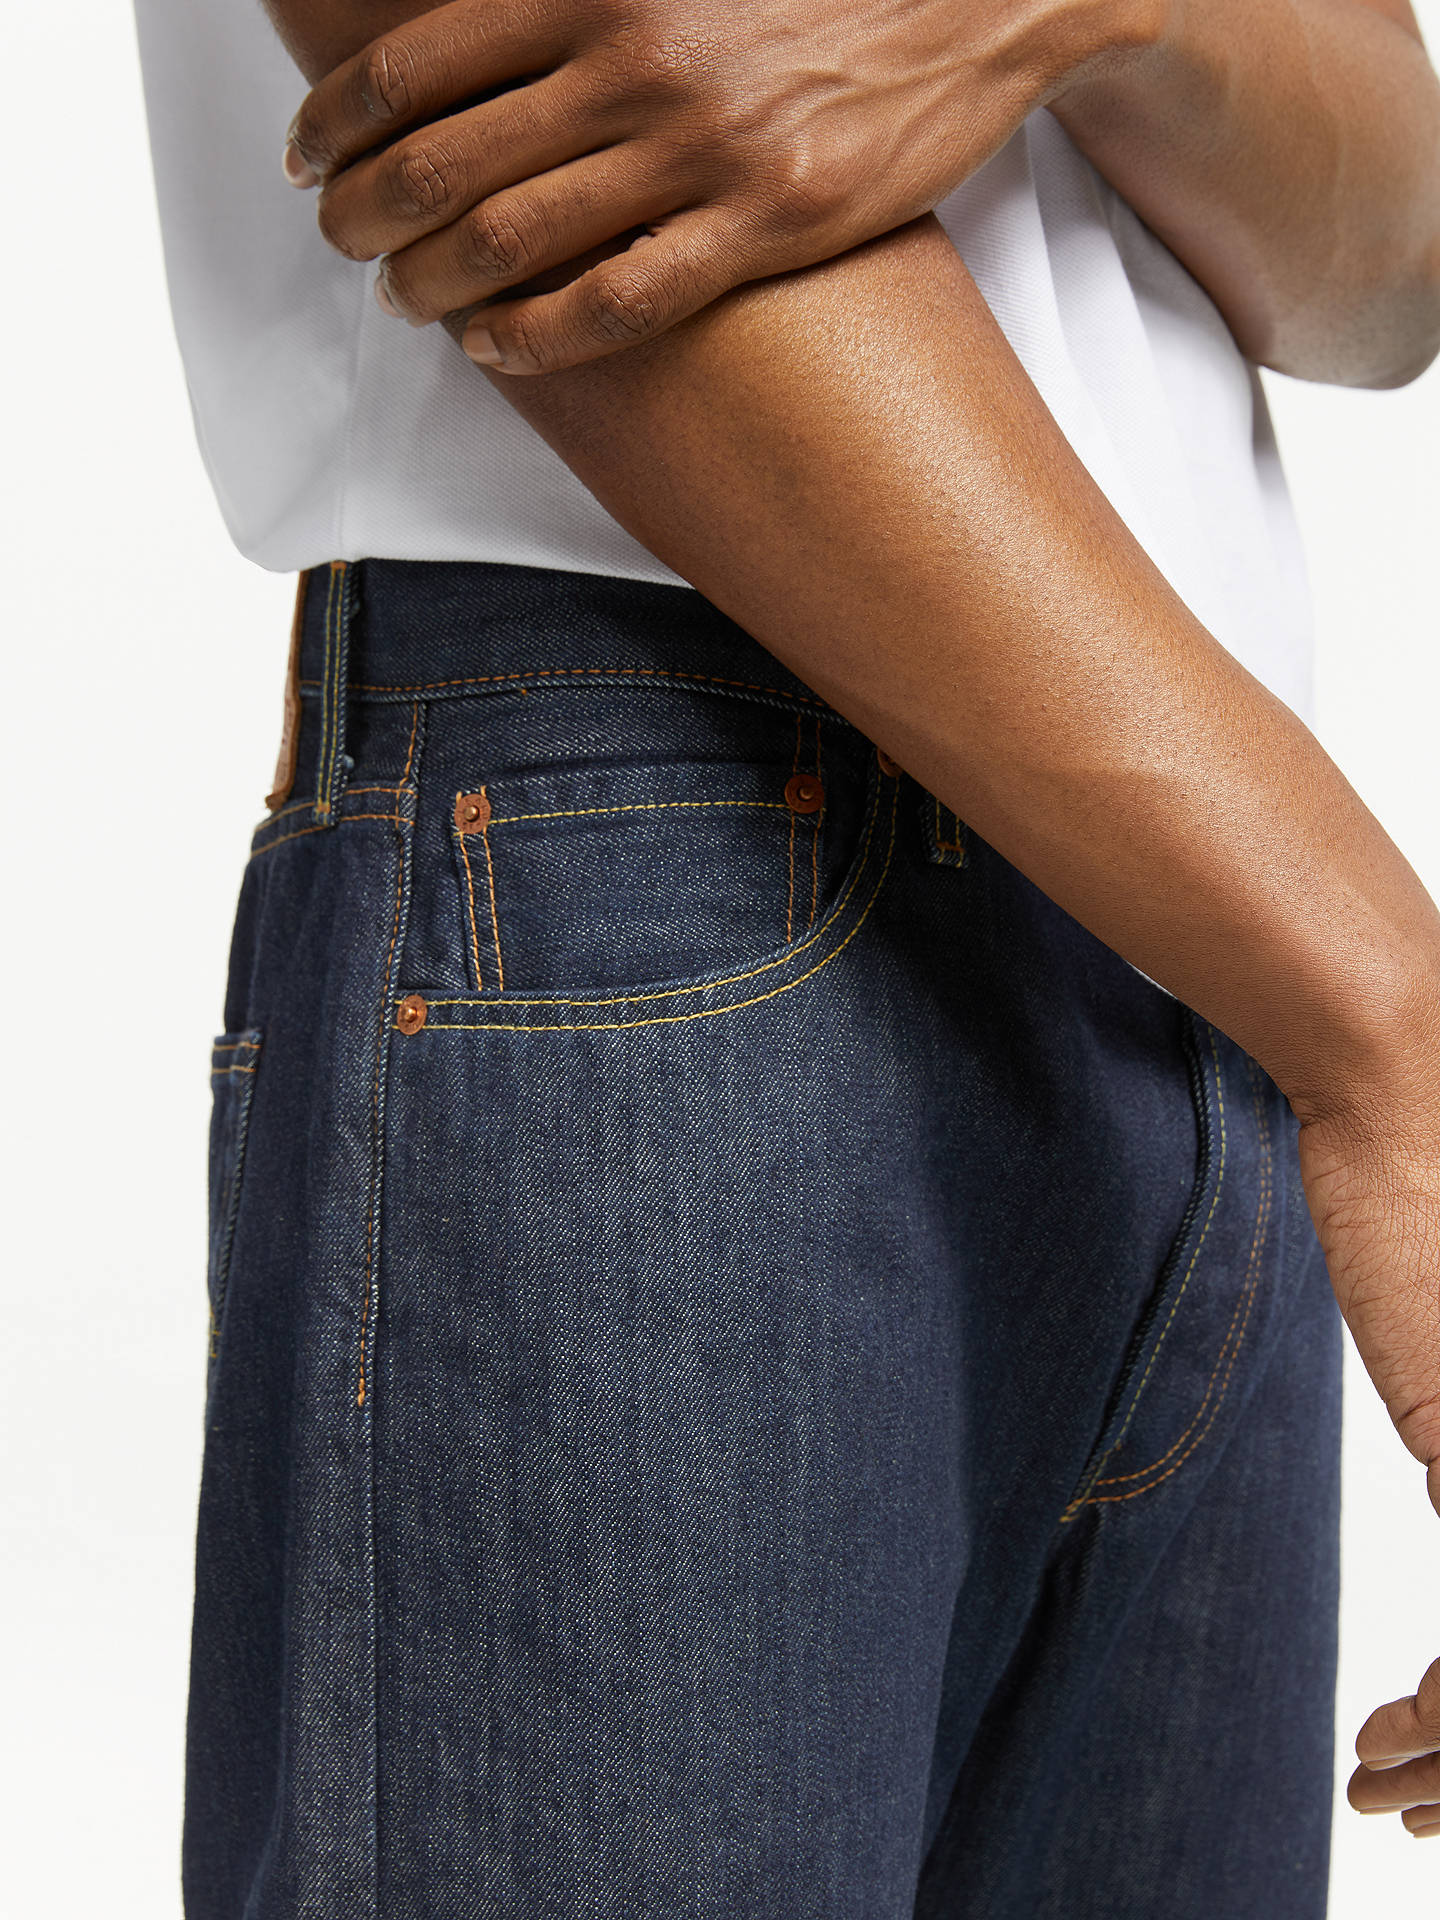 476395be ... Buy Levi's 501 Original Straight Jeans, Marlon, 30S Online at  johnlewis. ...